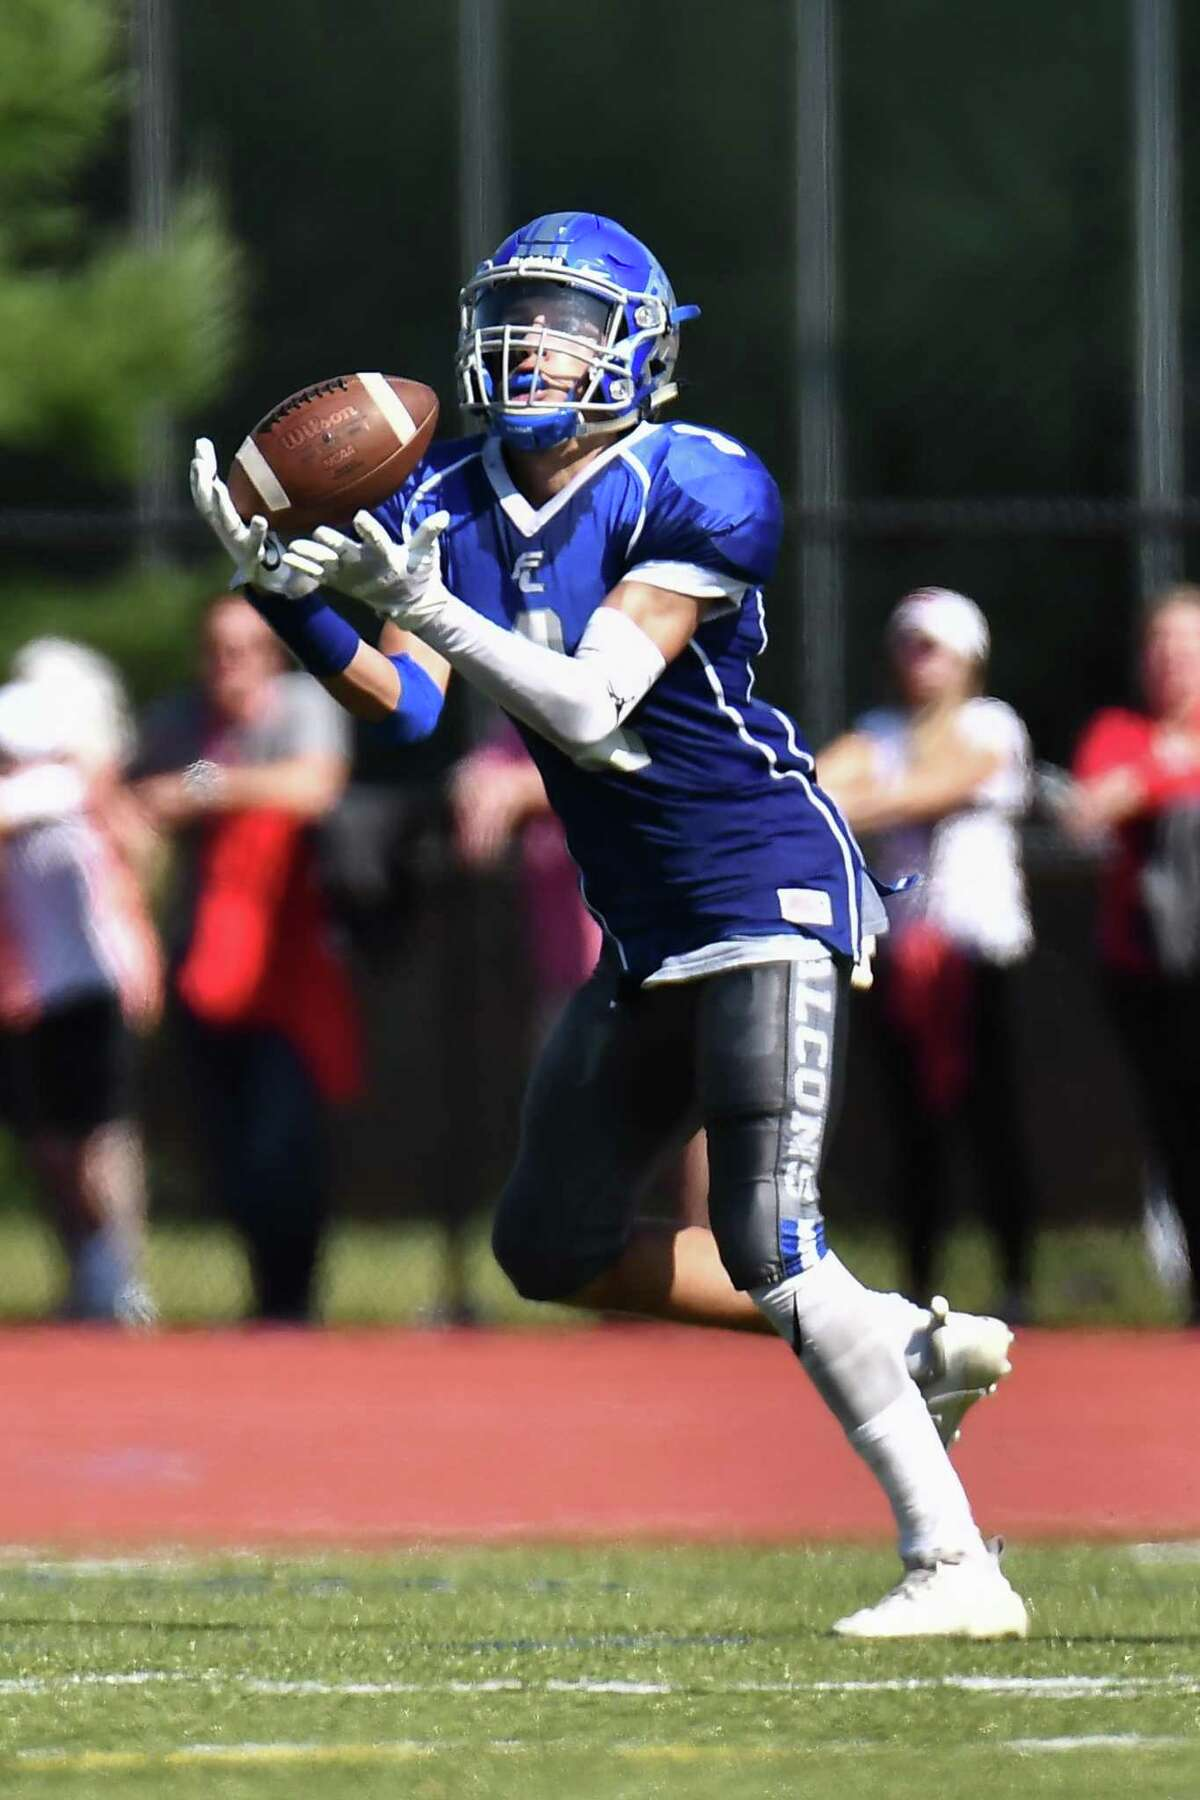 Football action during a game between the Fairfield Prep Jesuits and the Fairfield Ludlowe Falcons played on Saturday September 28th 2019 at Fairfield Ludlowe High School in Fairfield, CT.